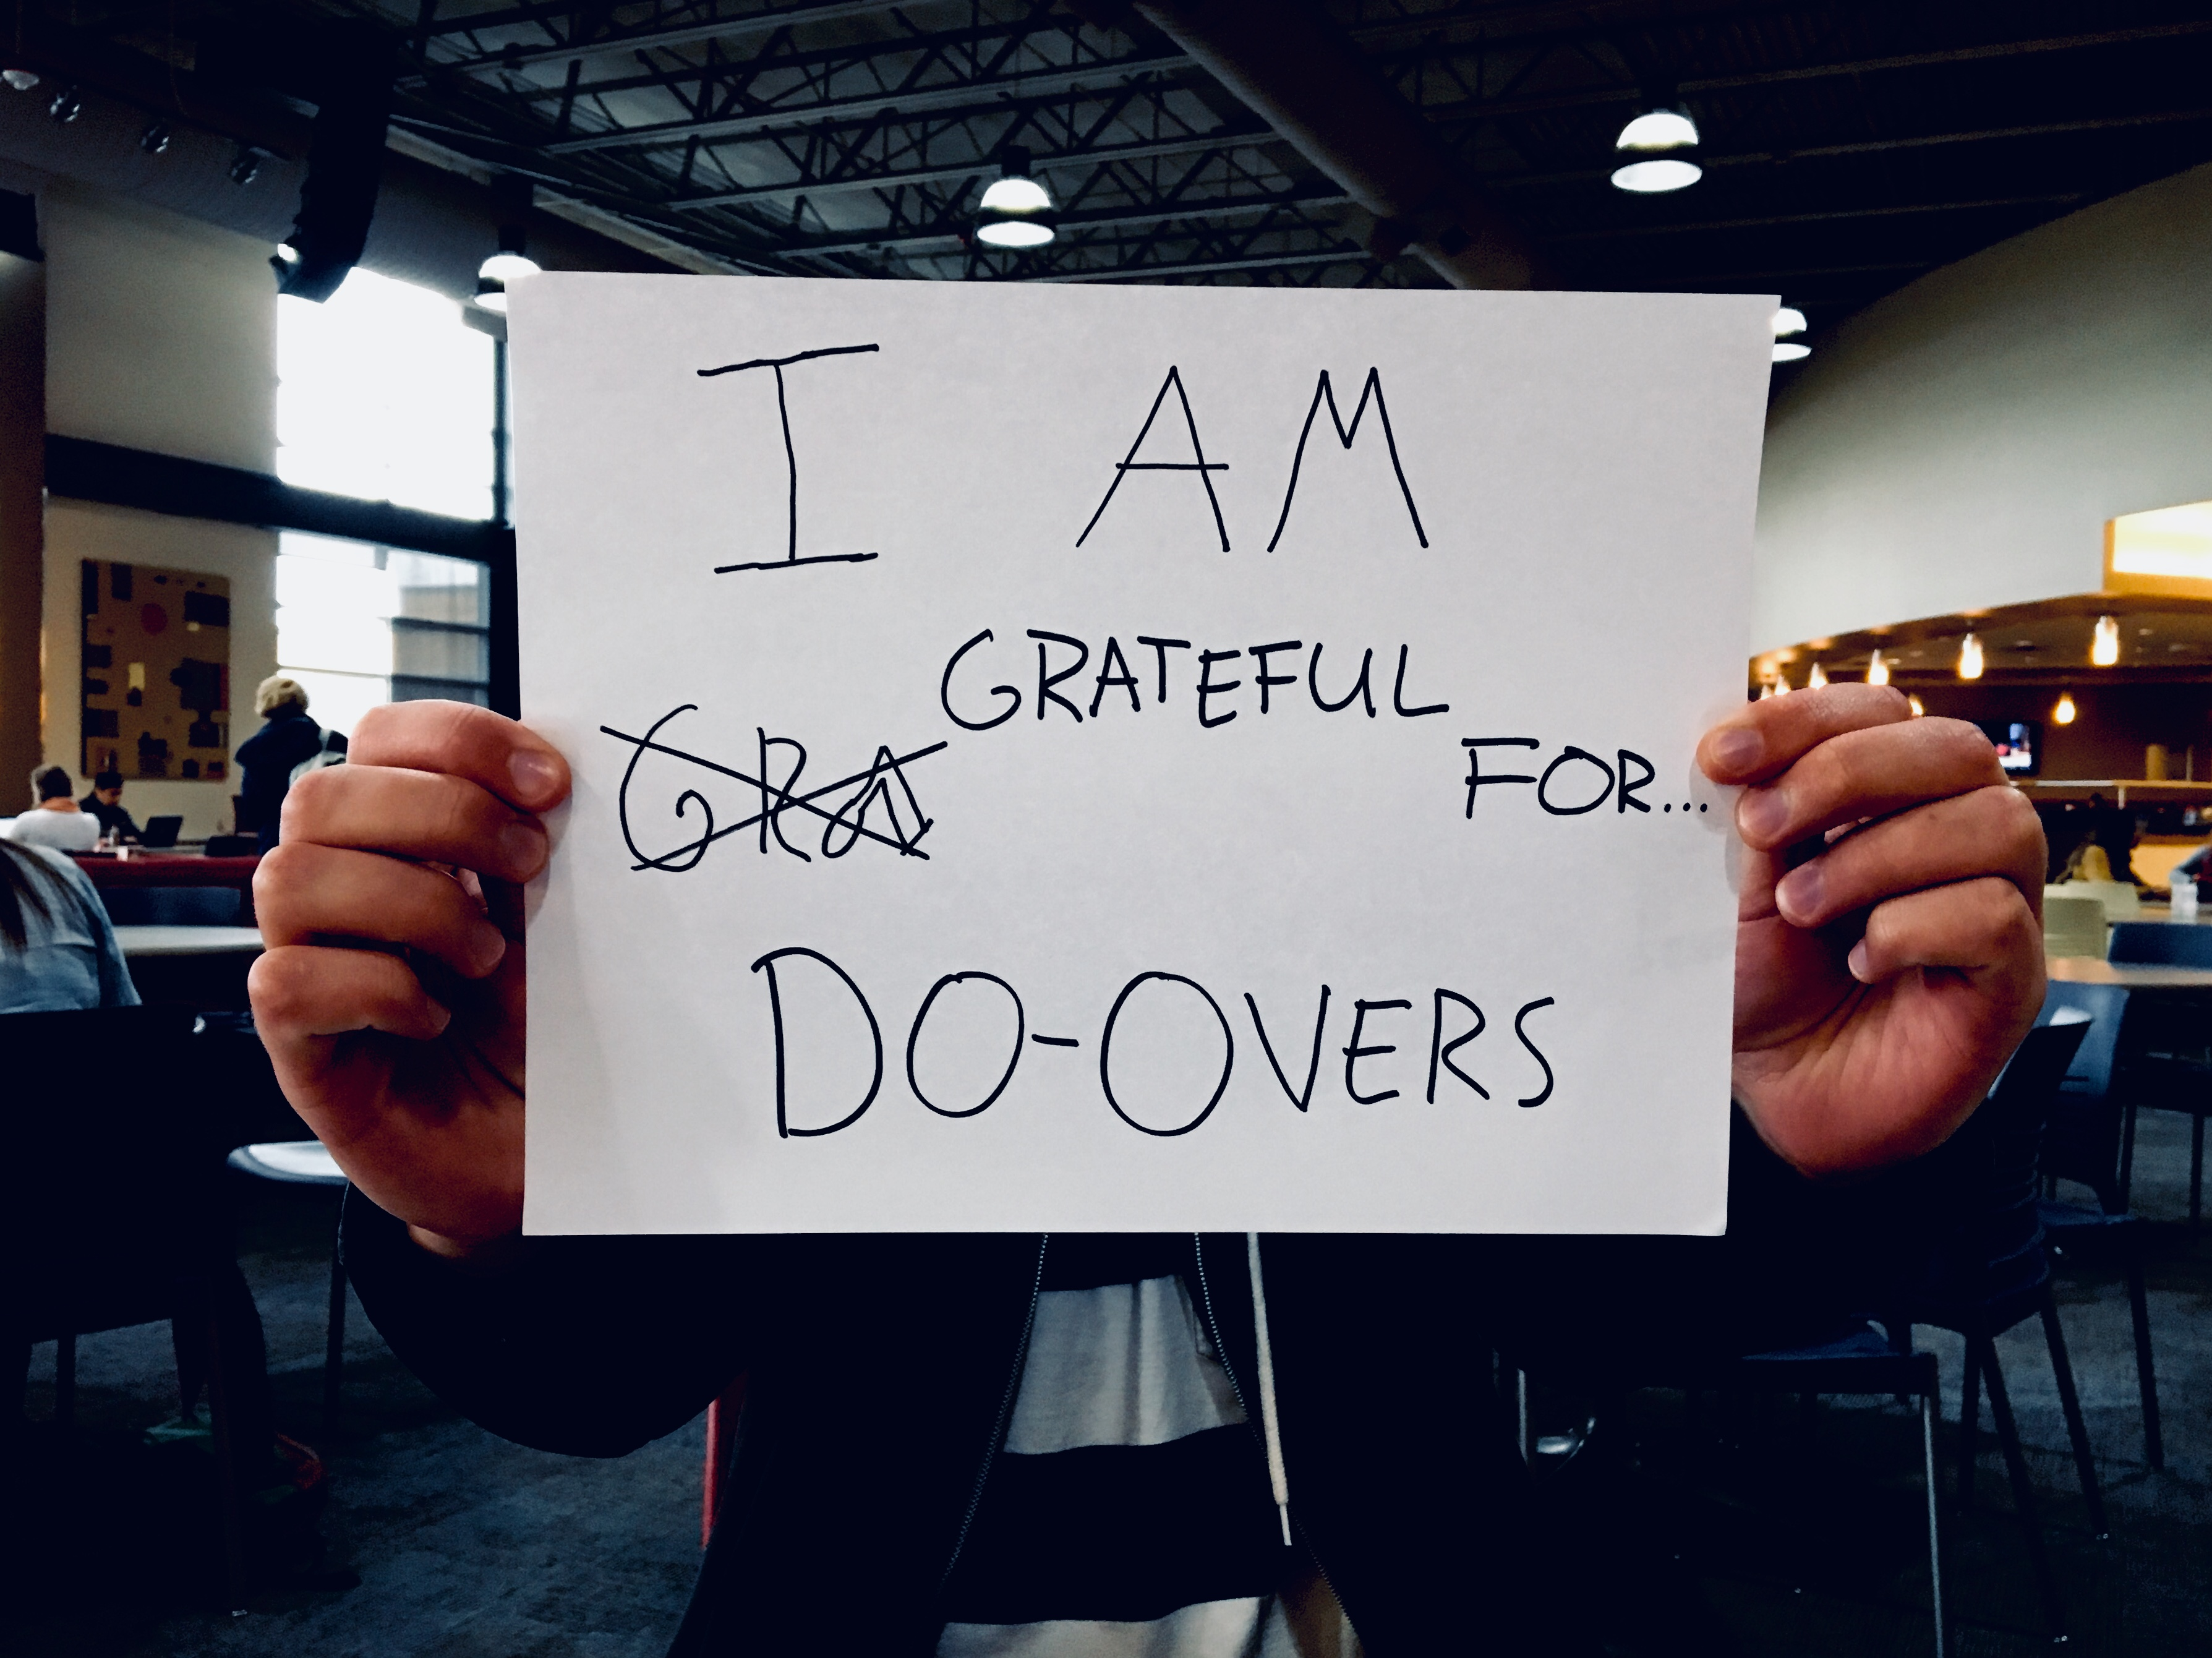 grateful for... do-overs